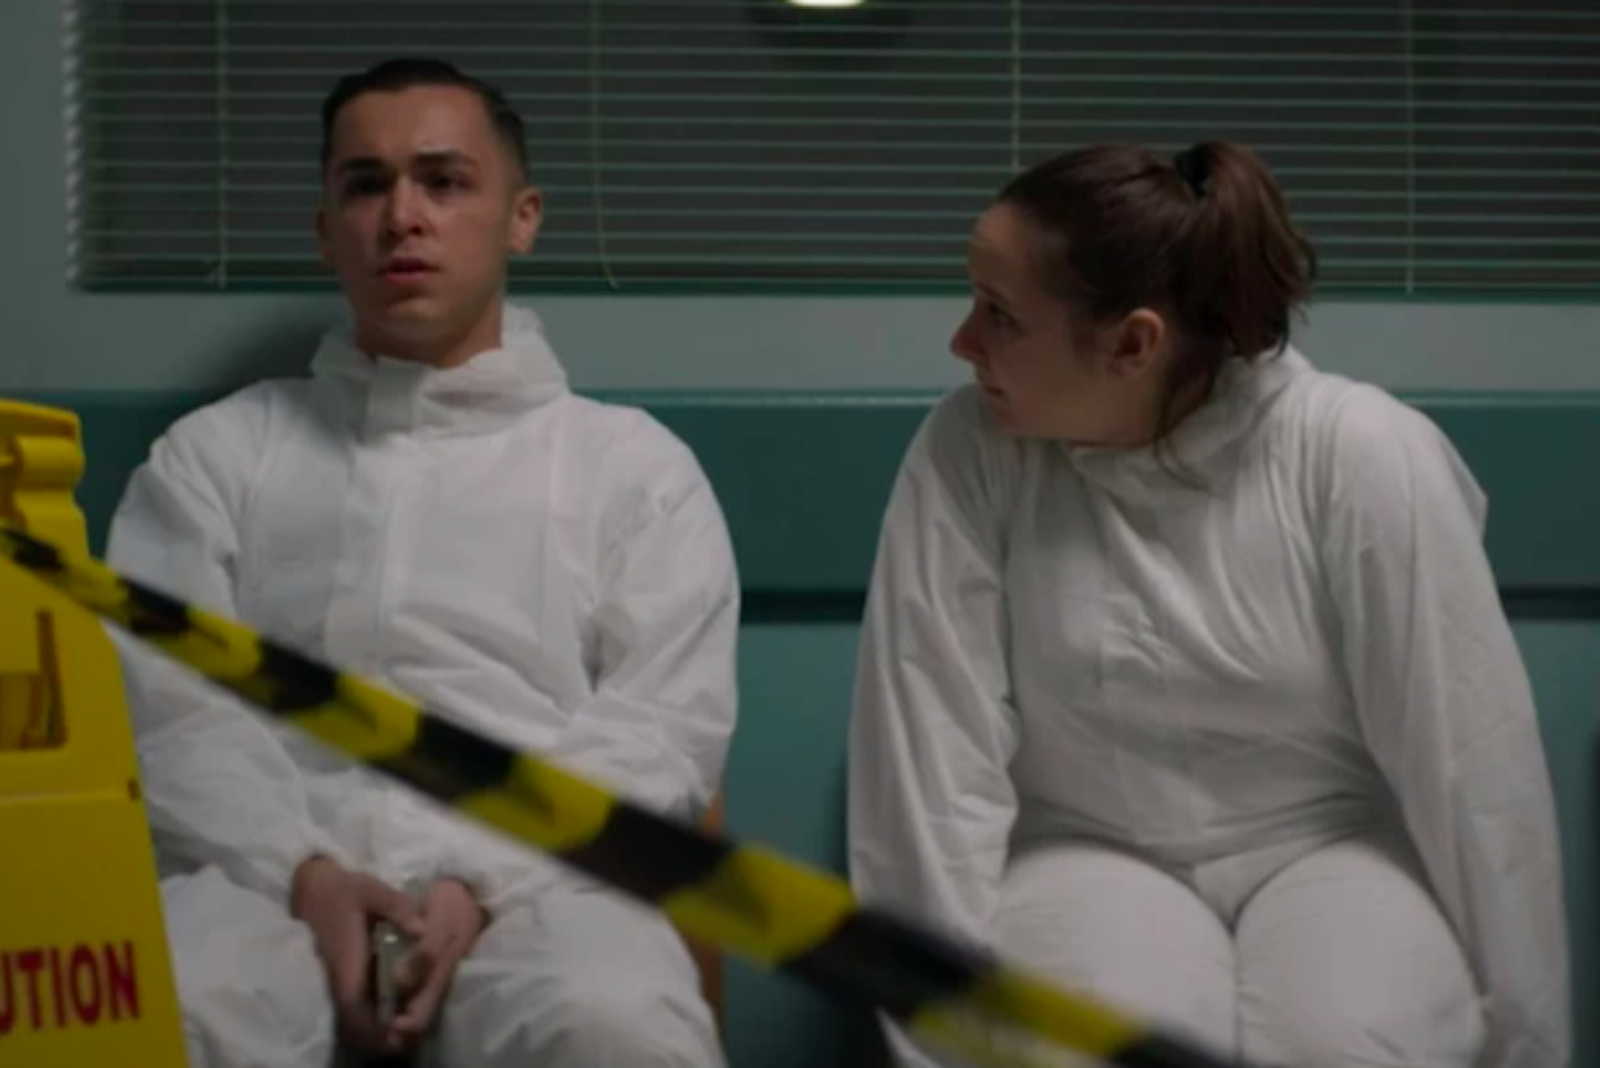 Casualty fans confused as BBC skips an 'inappropriate episode'